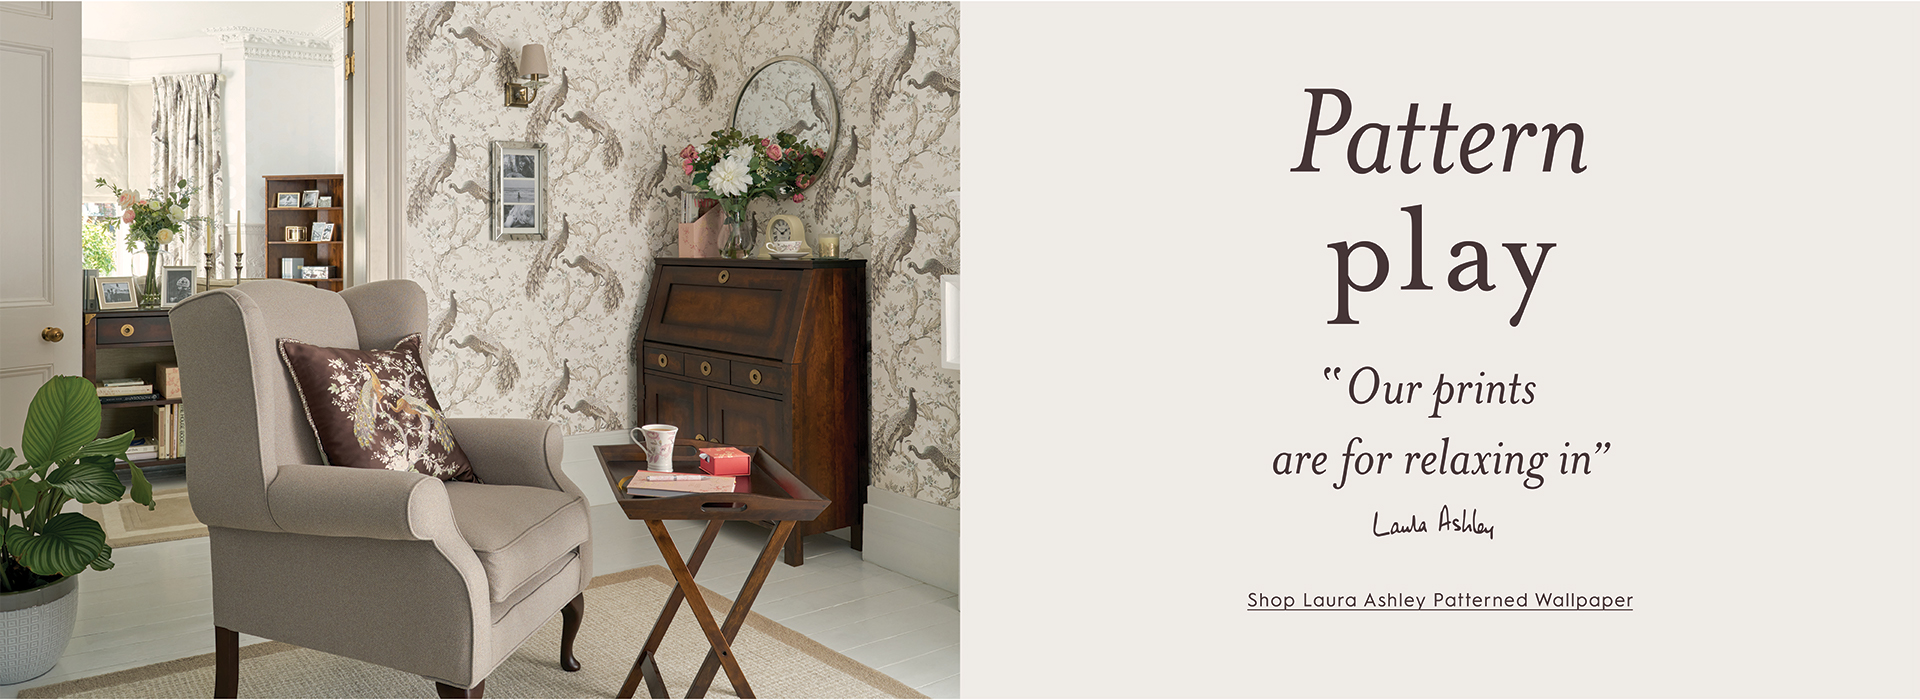 Pattern play ''our prints are for relaxing in'' - Laura Ashley. Shop Laura Ashley Patterned Wallpaper.